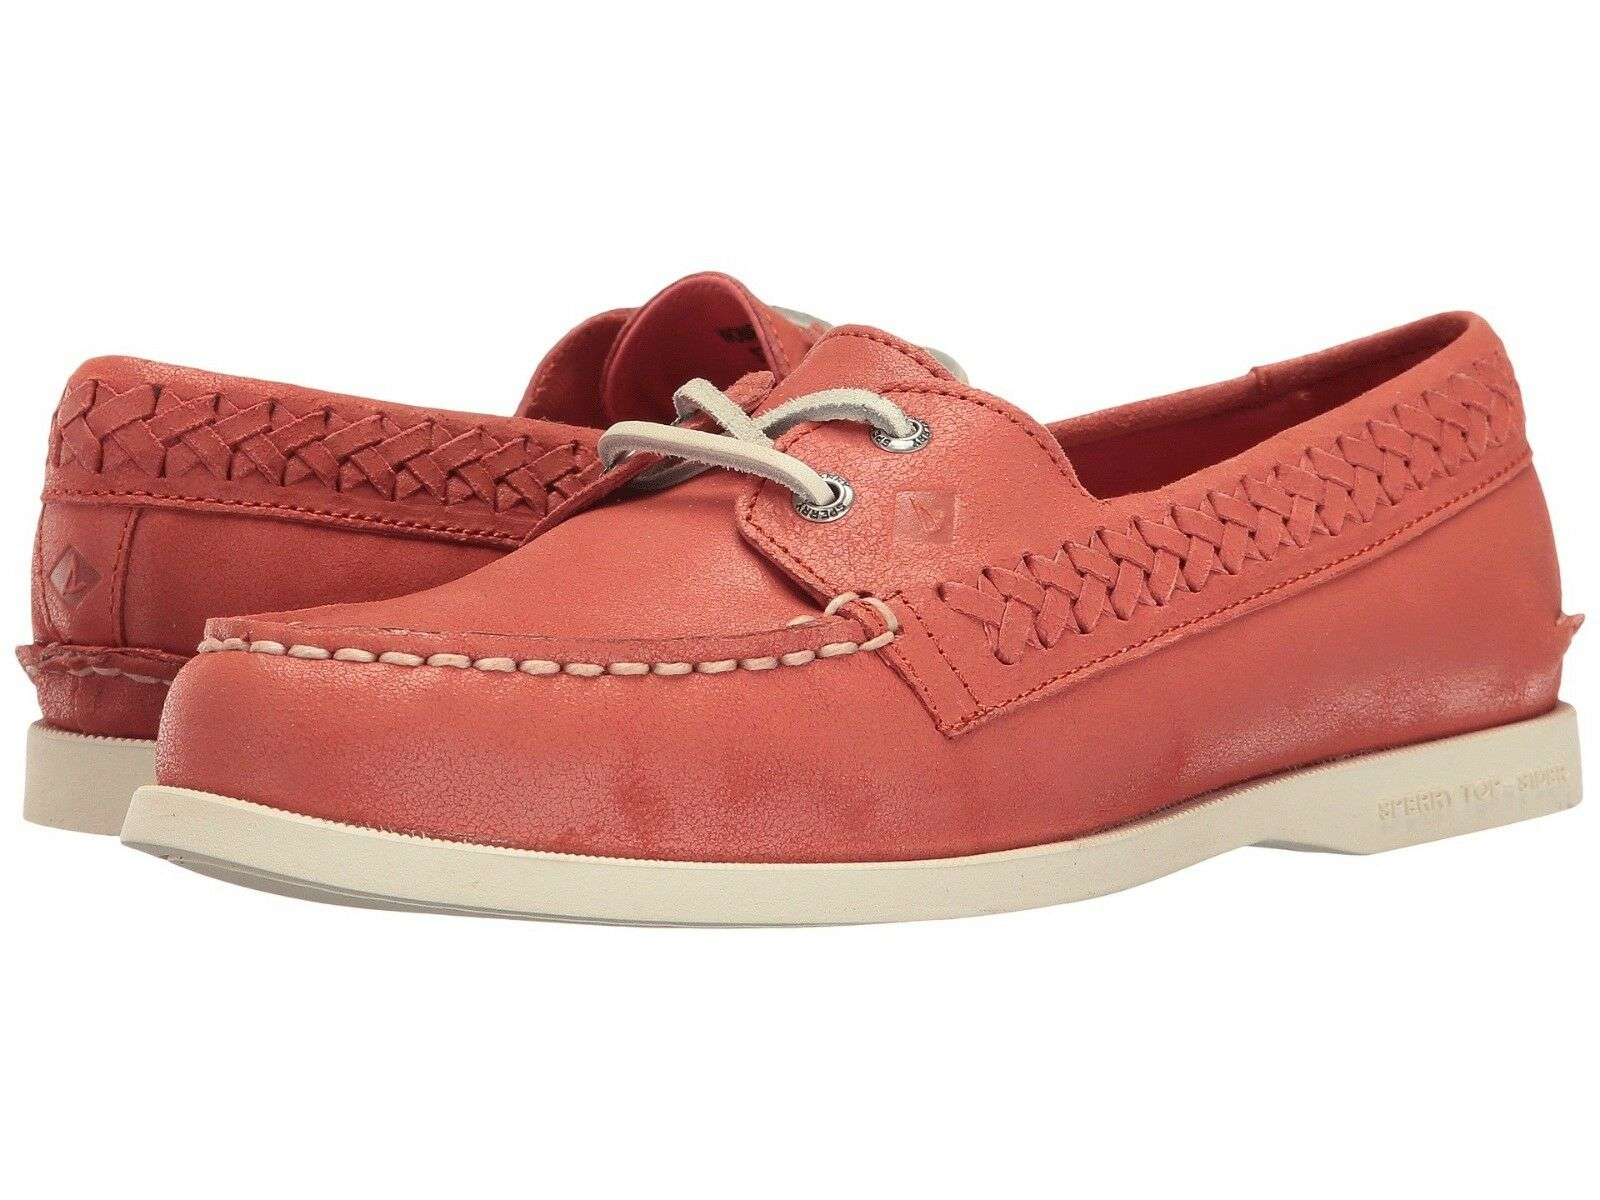 Sperry Top-Sider Women Quinn Boat Shoes True- Moc Slip-on Leather Coral 7.5,8,9